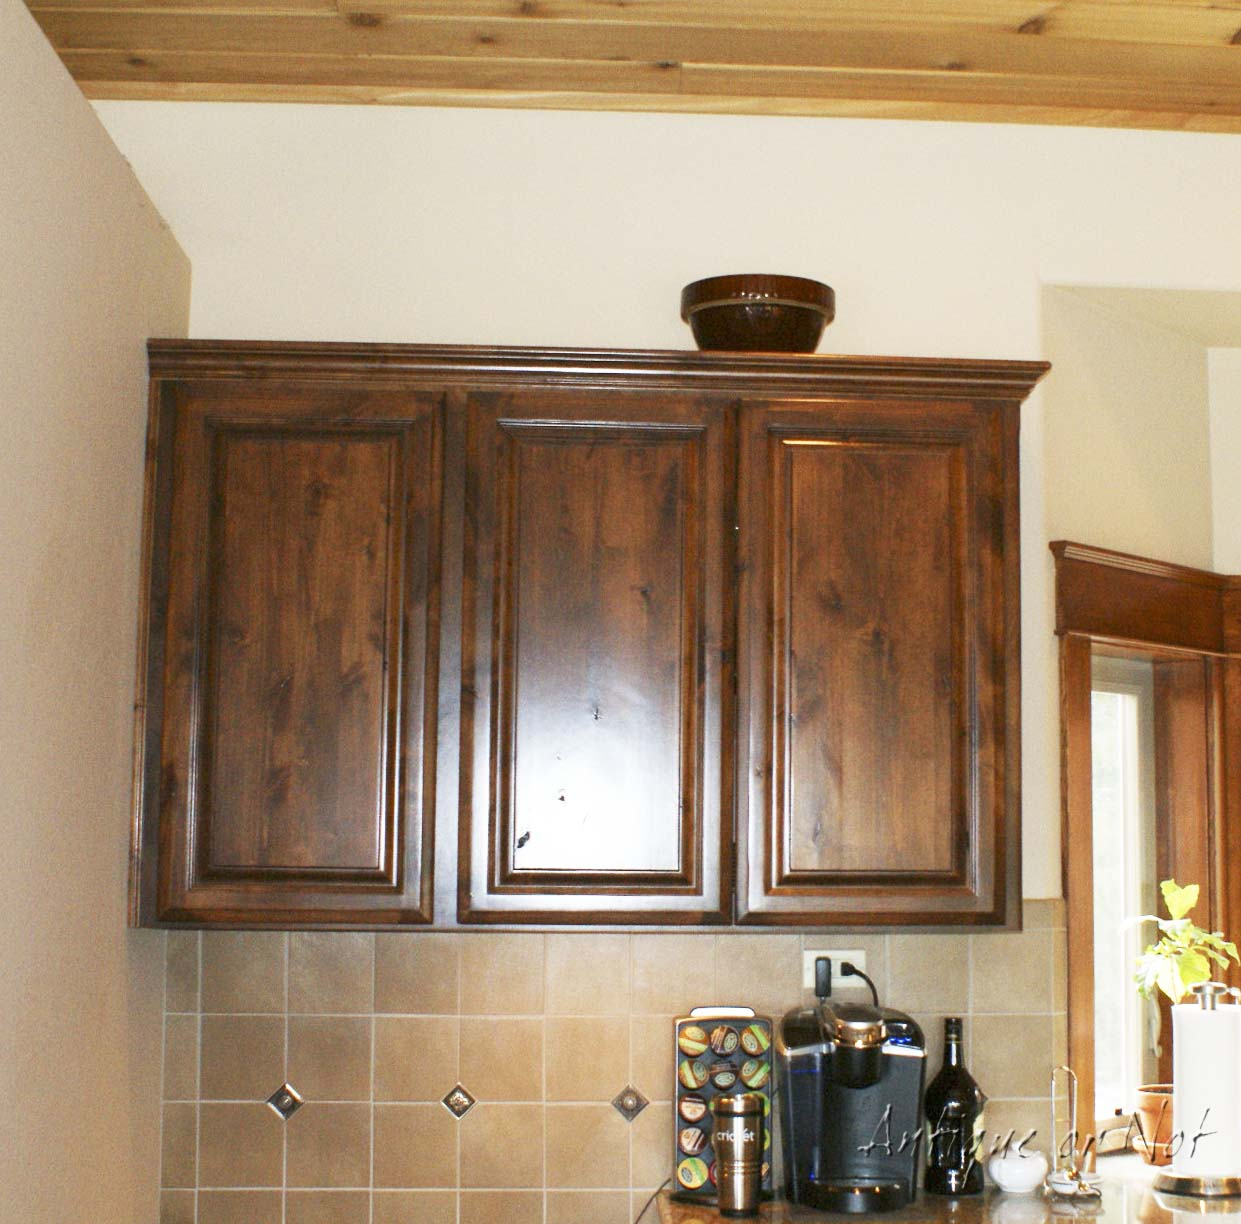 Kitchen Decor For Above Cabinets: Antique Or Not: Decorating Above Your Cabinets